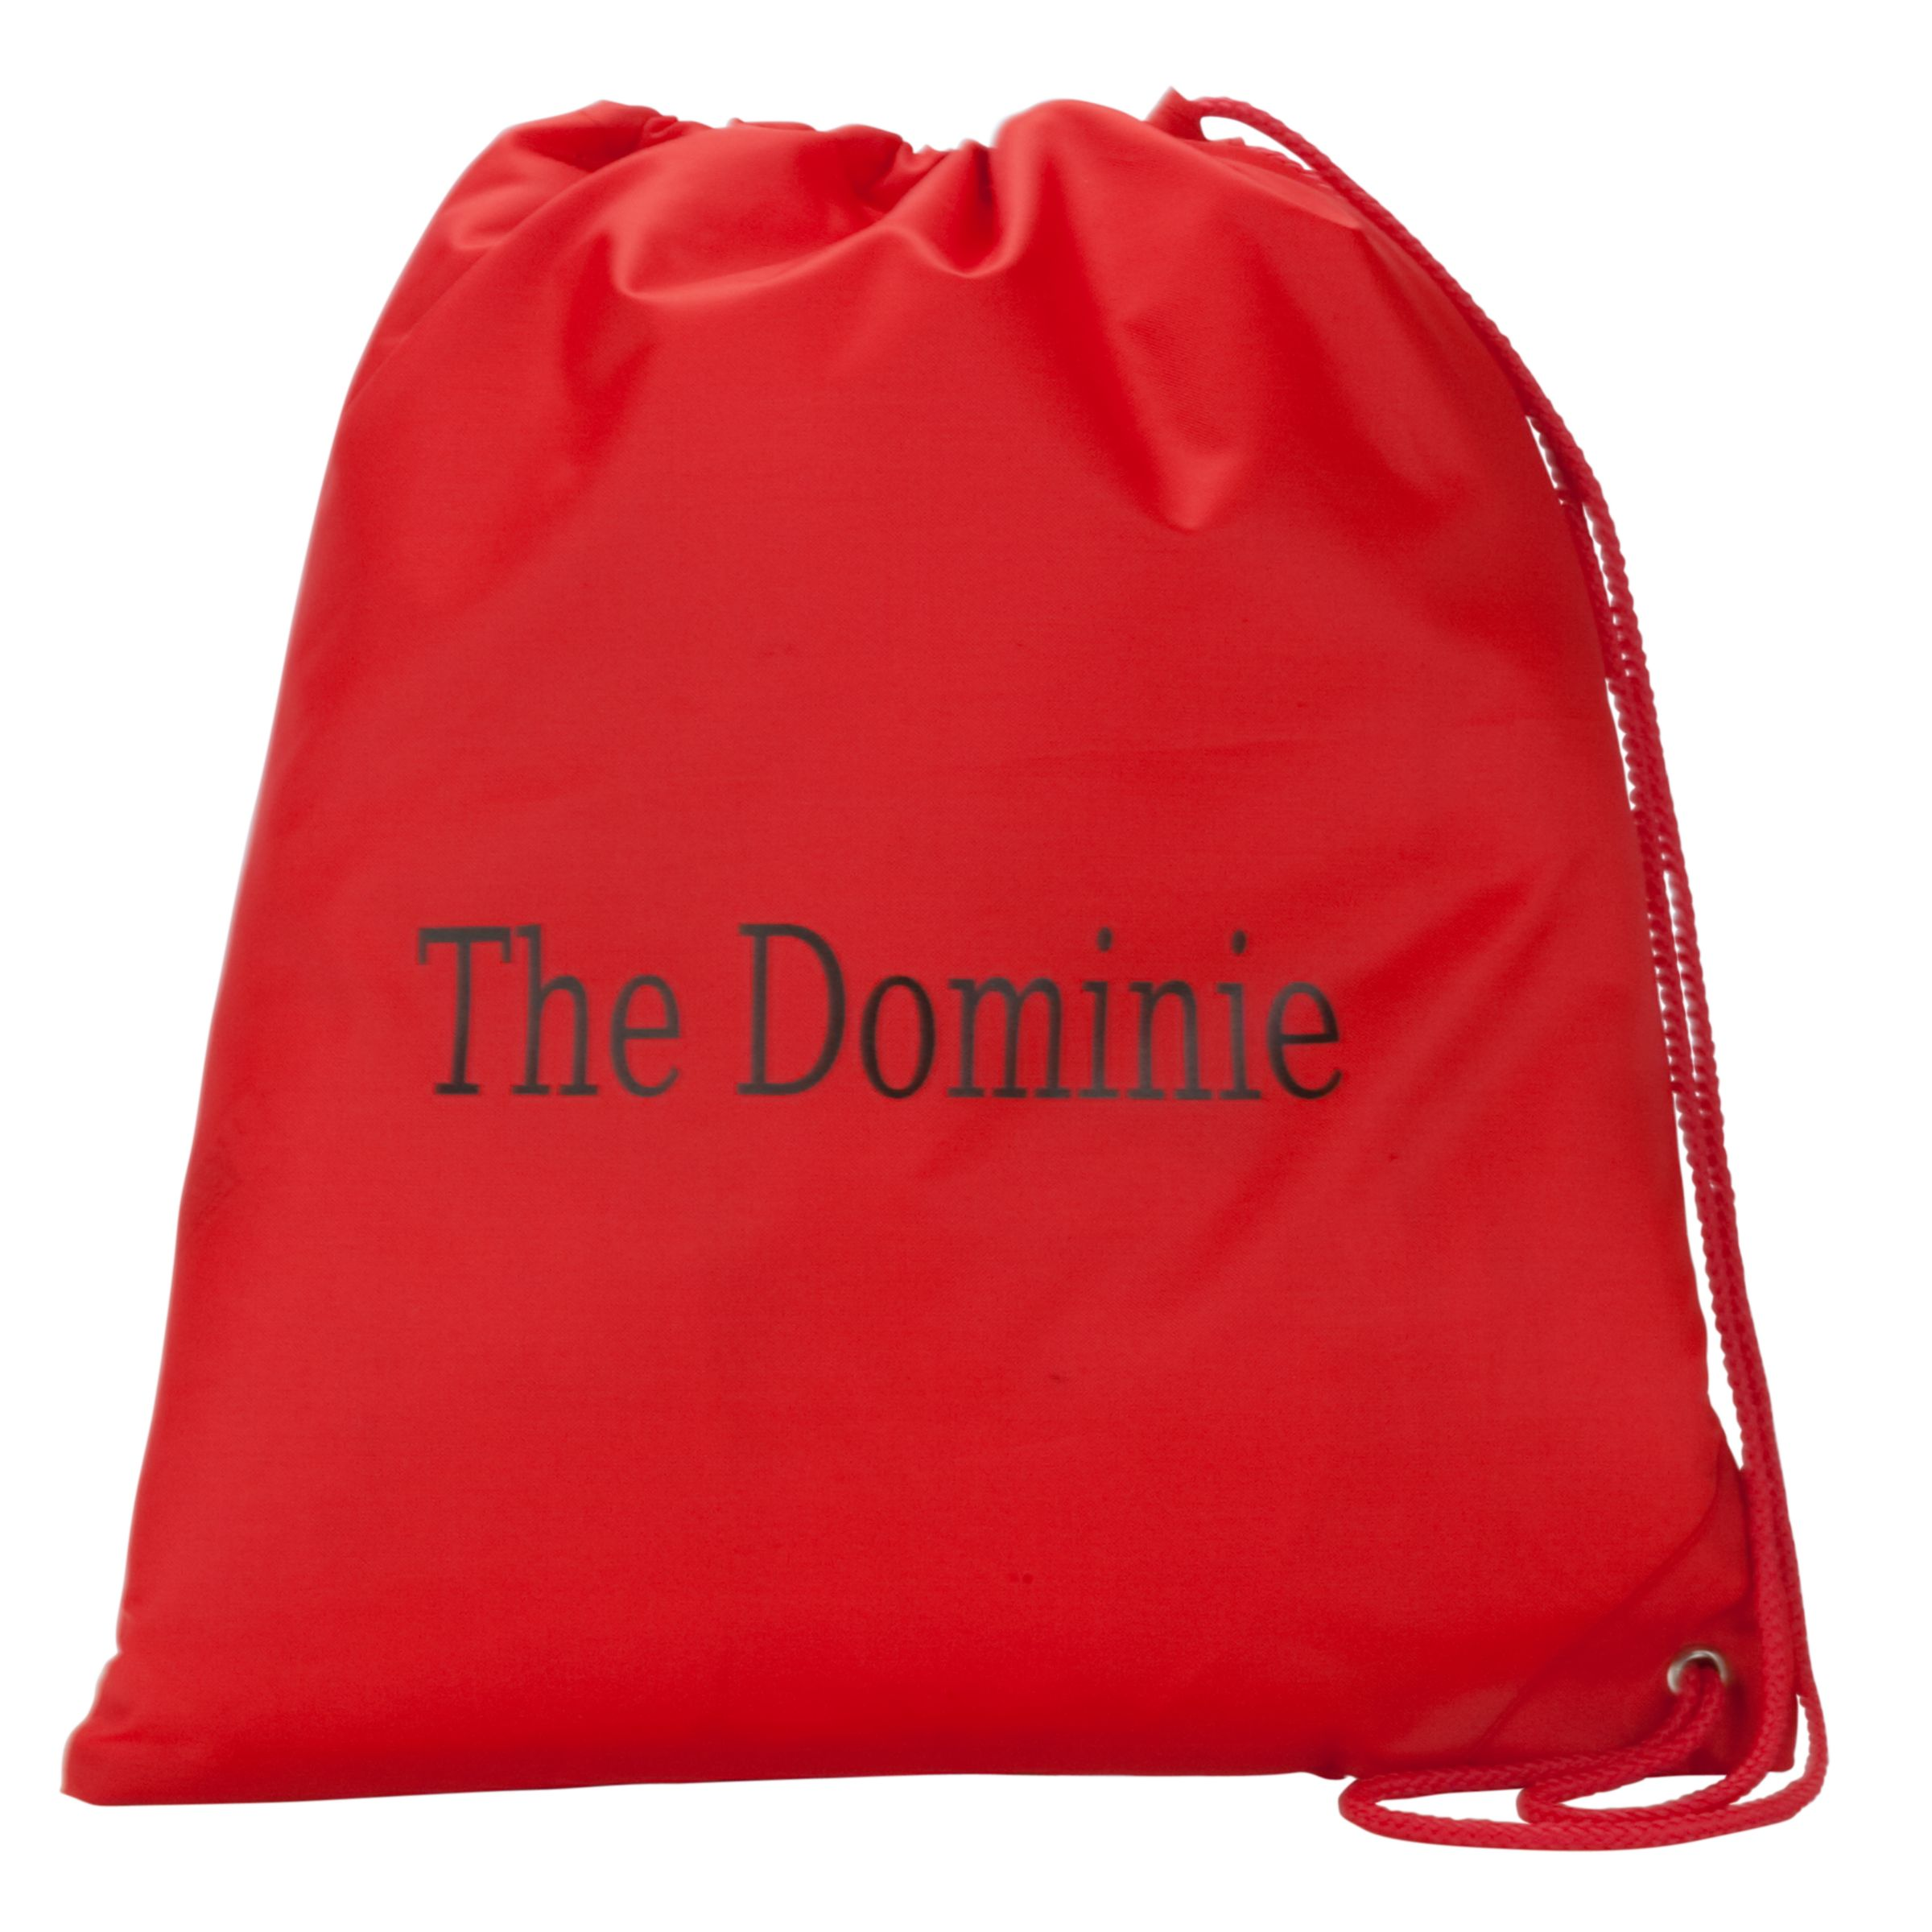 The Dominie The Dominie PE Bag, Red